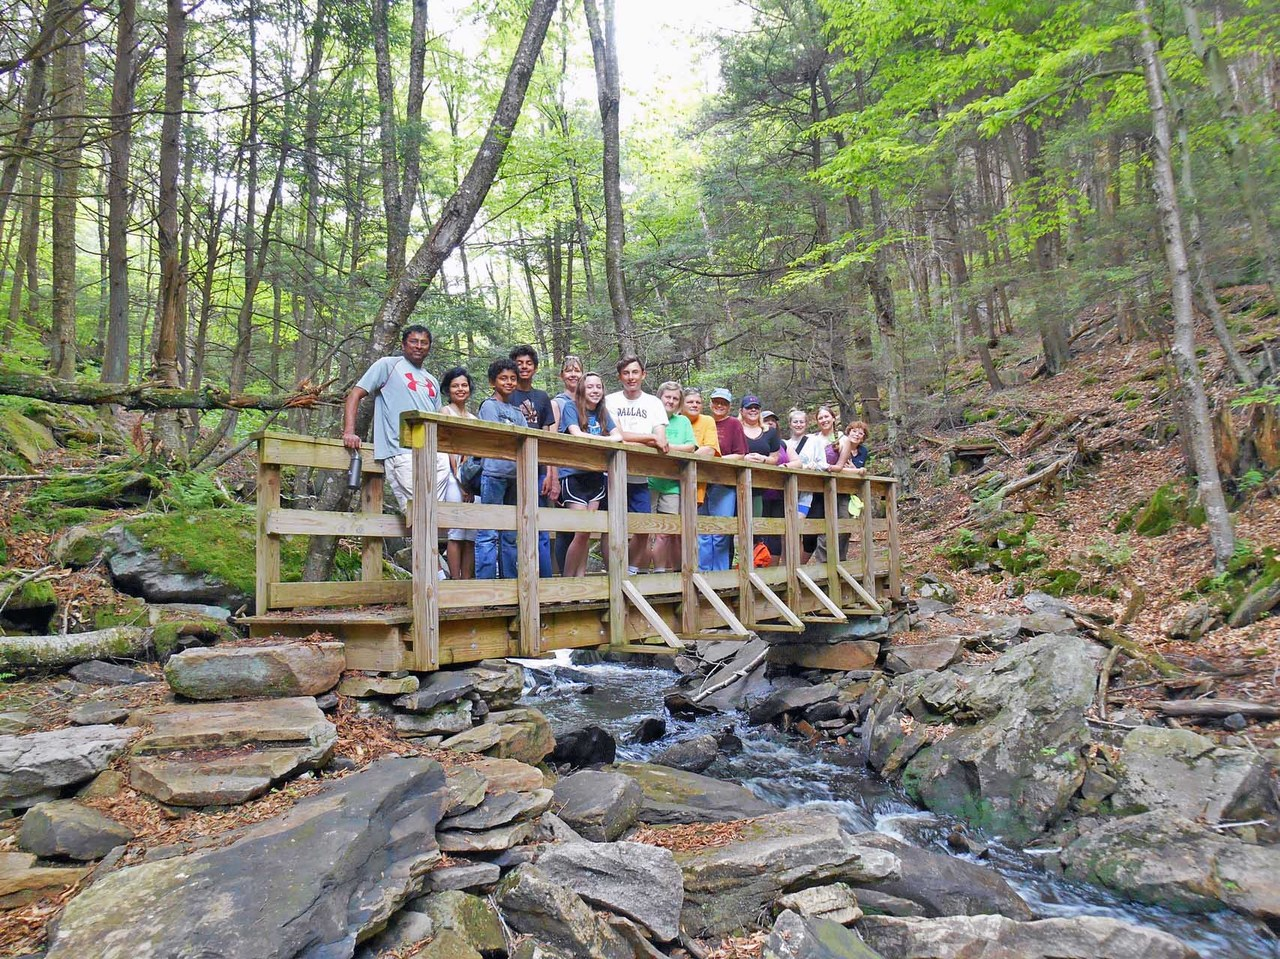 A large group of people stand on a trail bridge over a rocky mountain creek.